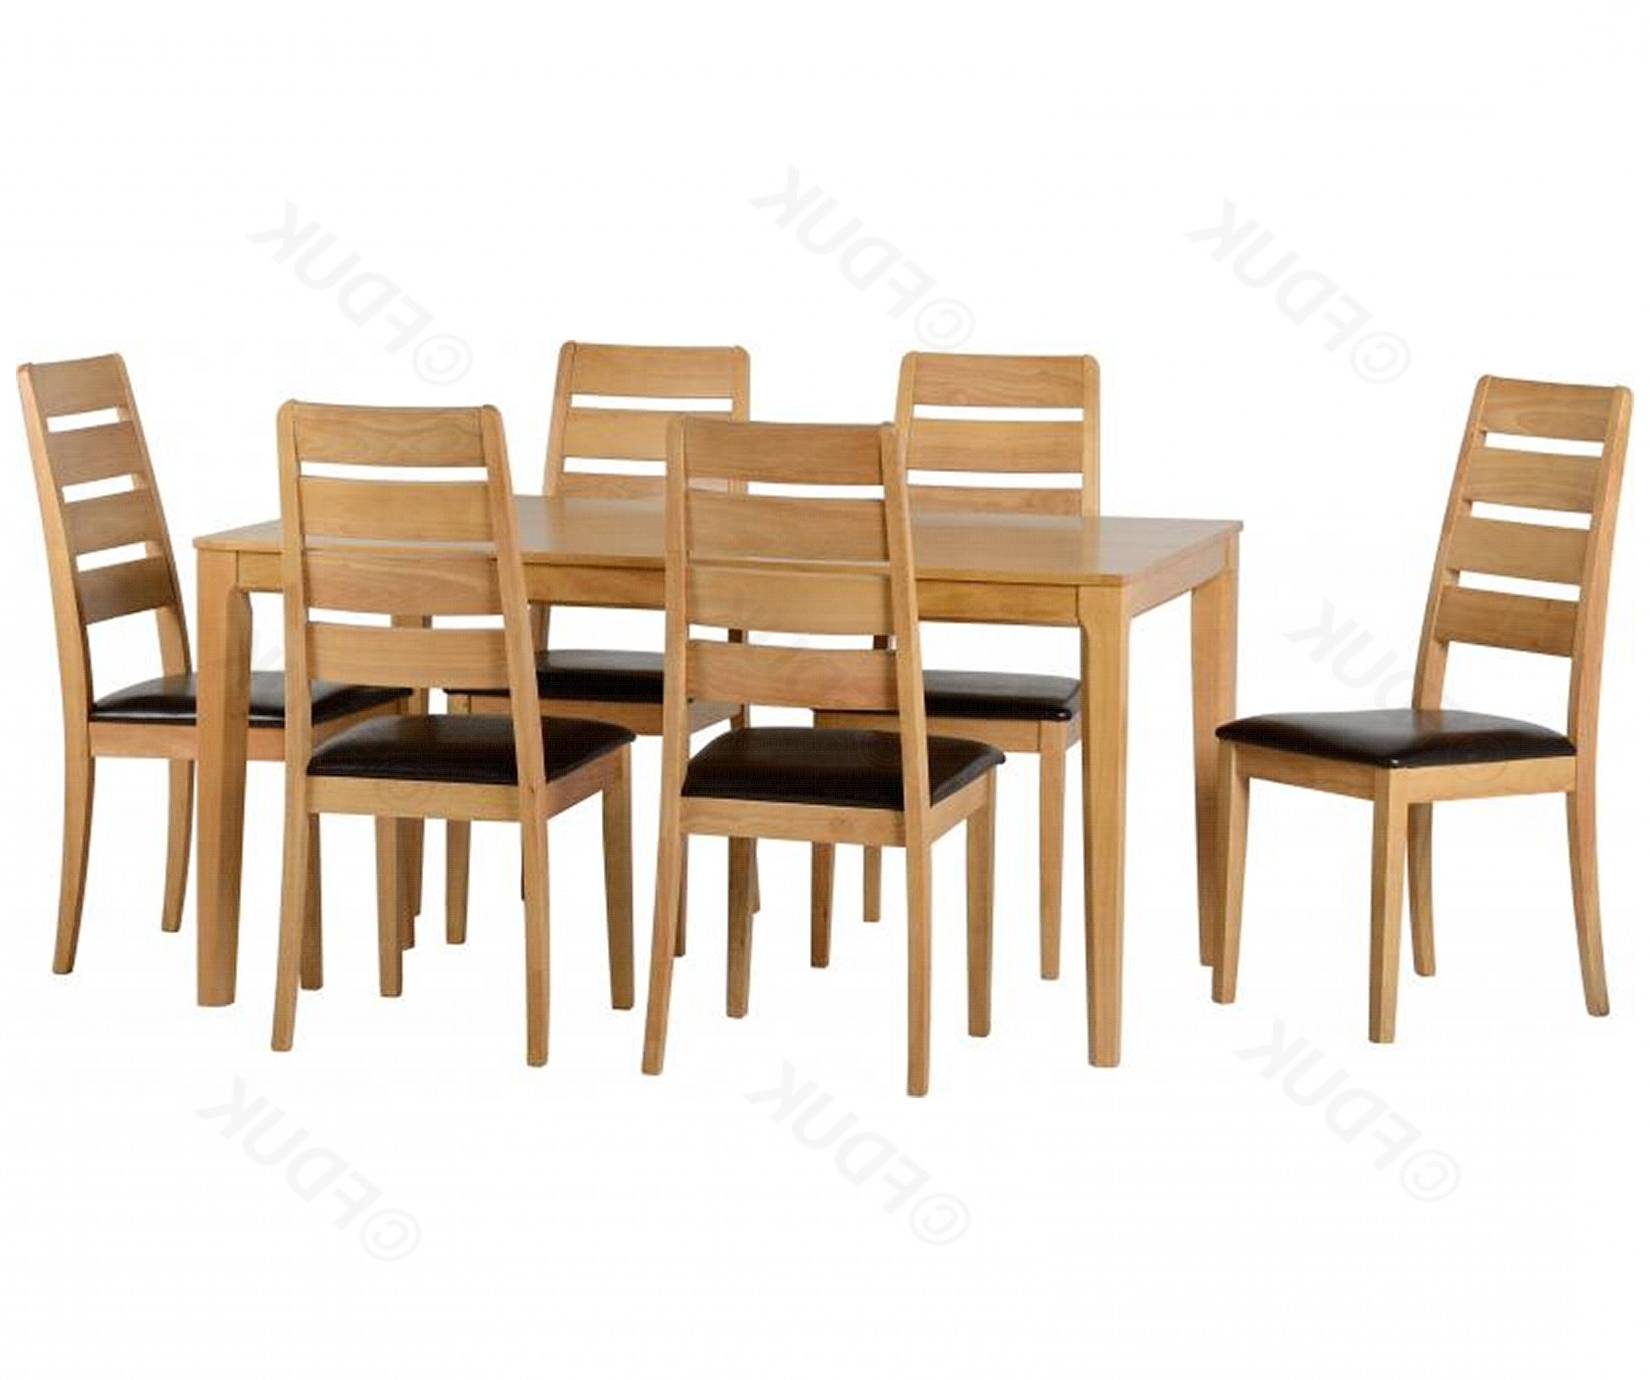 Logan 6 Piece Dining Sets Intended For Most Recent Seconique (View 13 of 25)